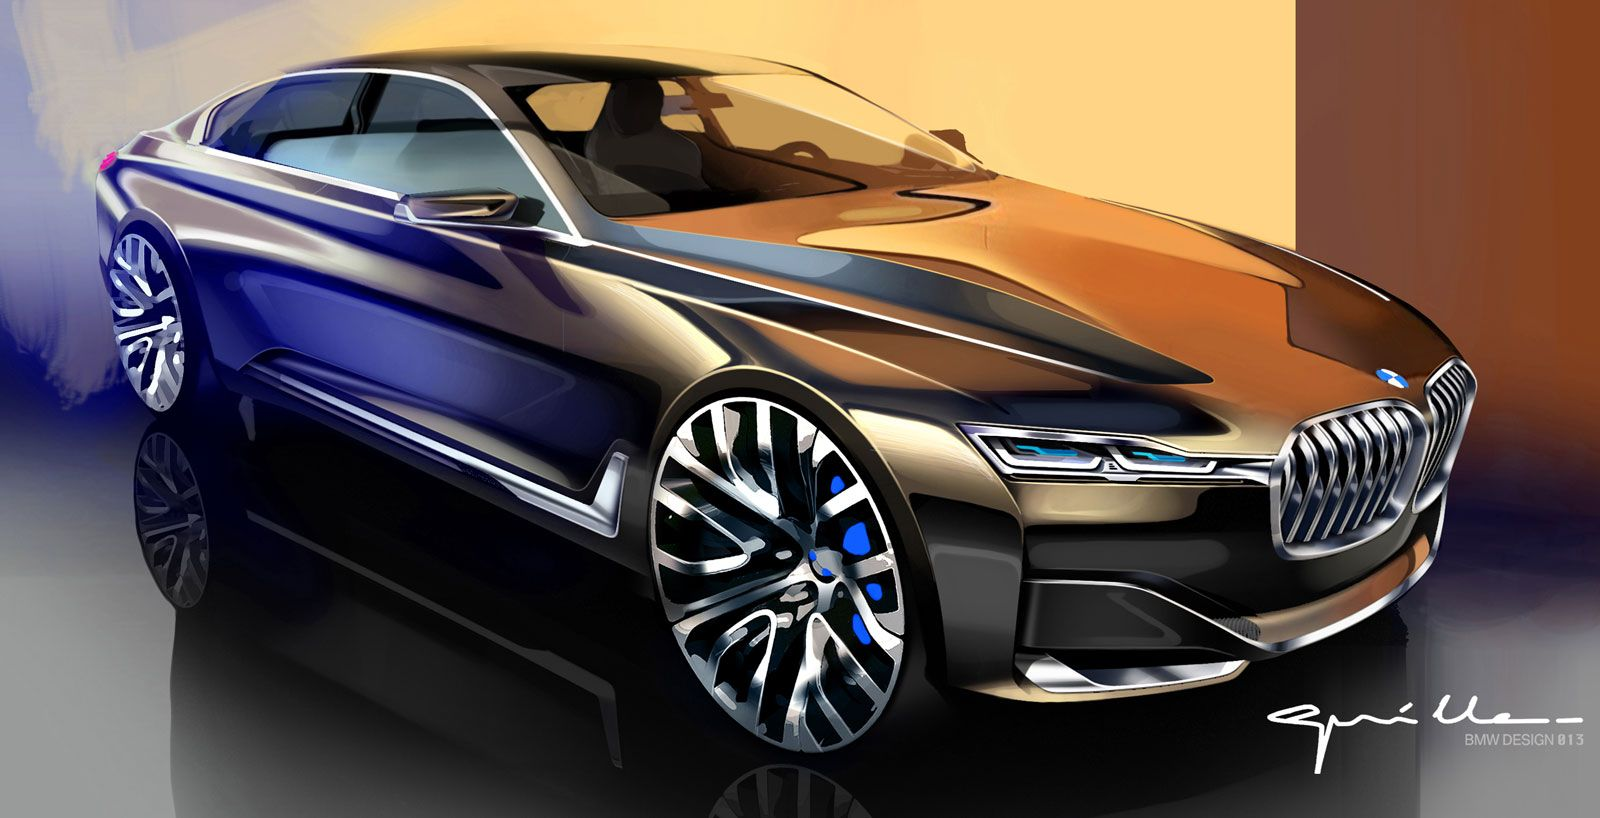 Luxury Car Vision >> Future Concept Car Design Bmw Vision Future Luxury Concept